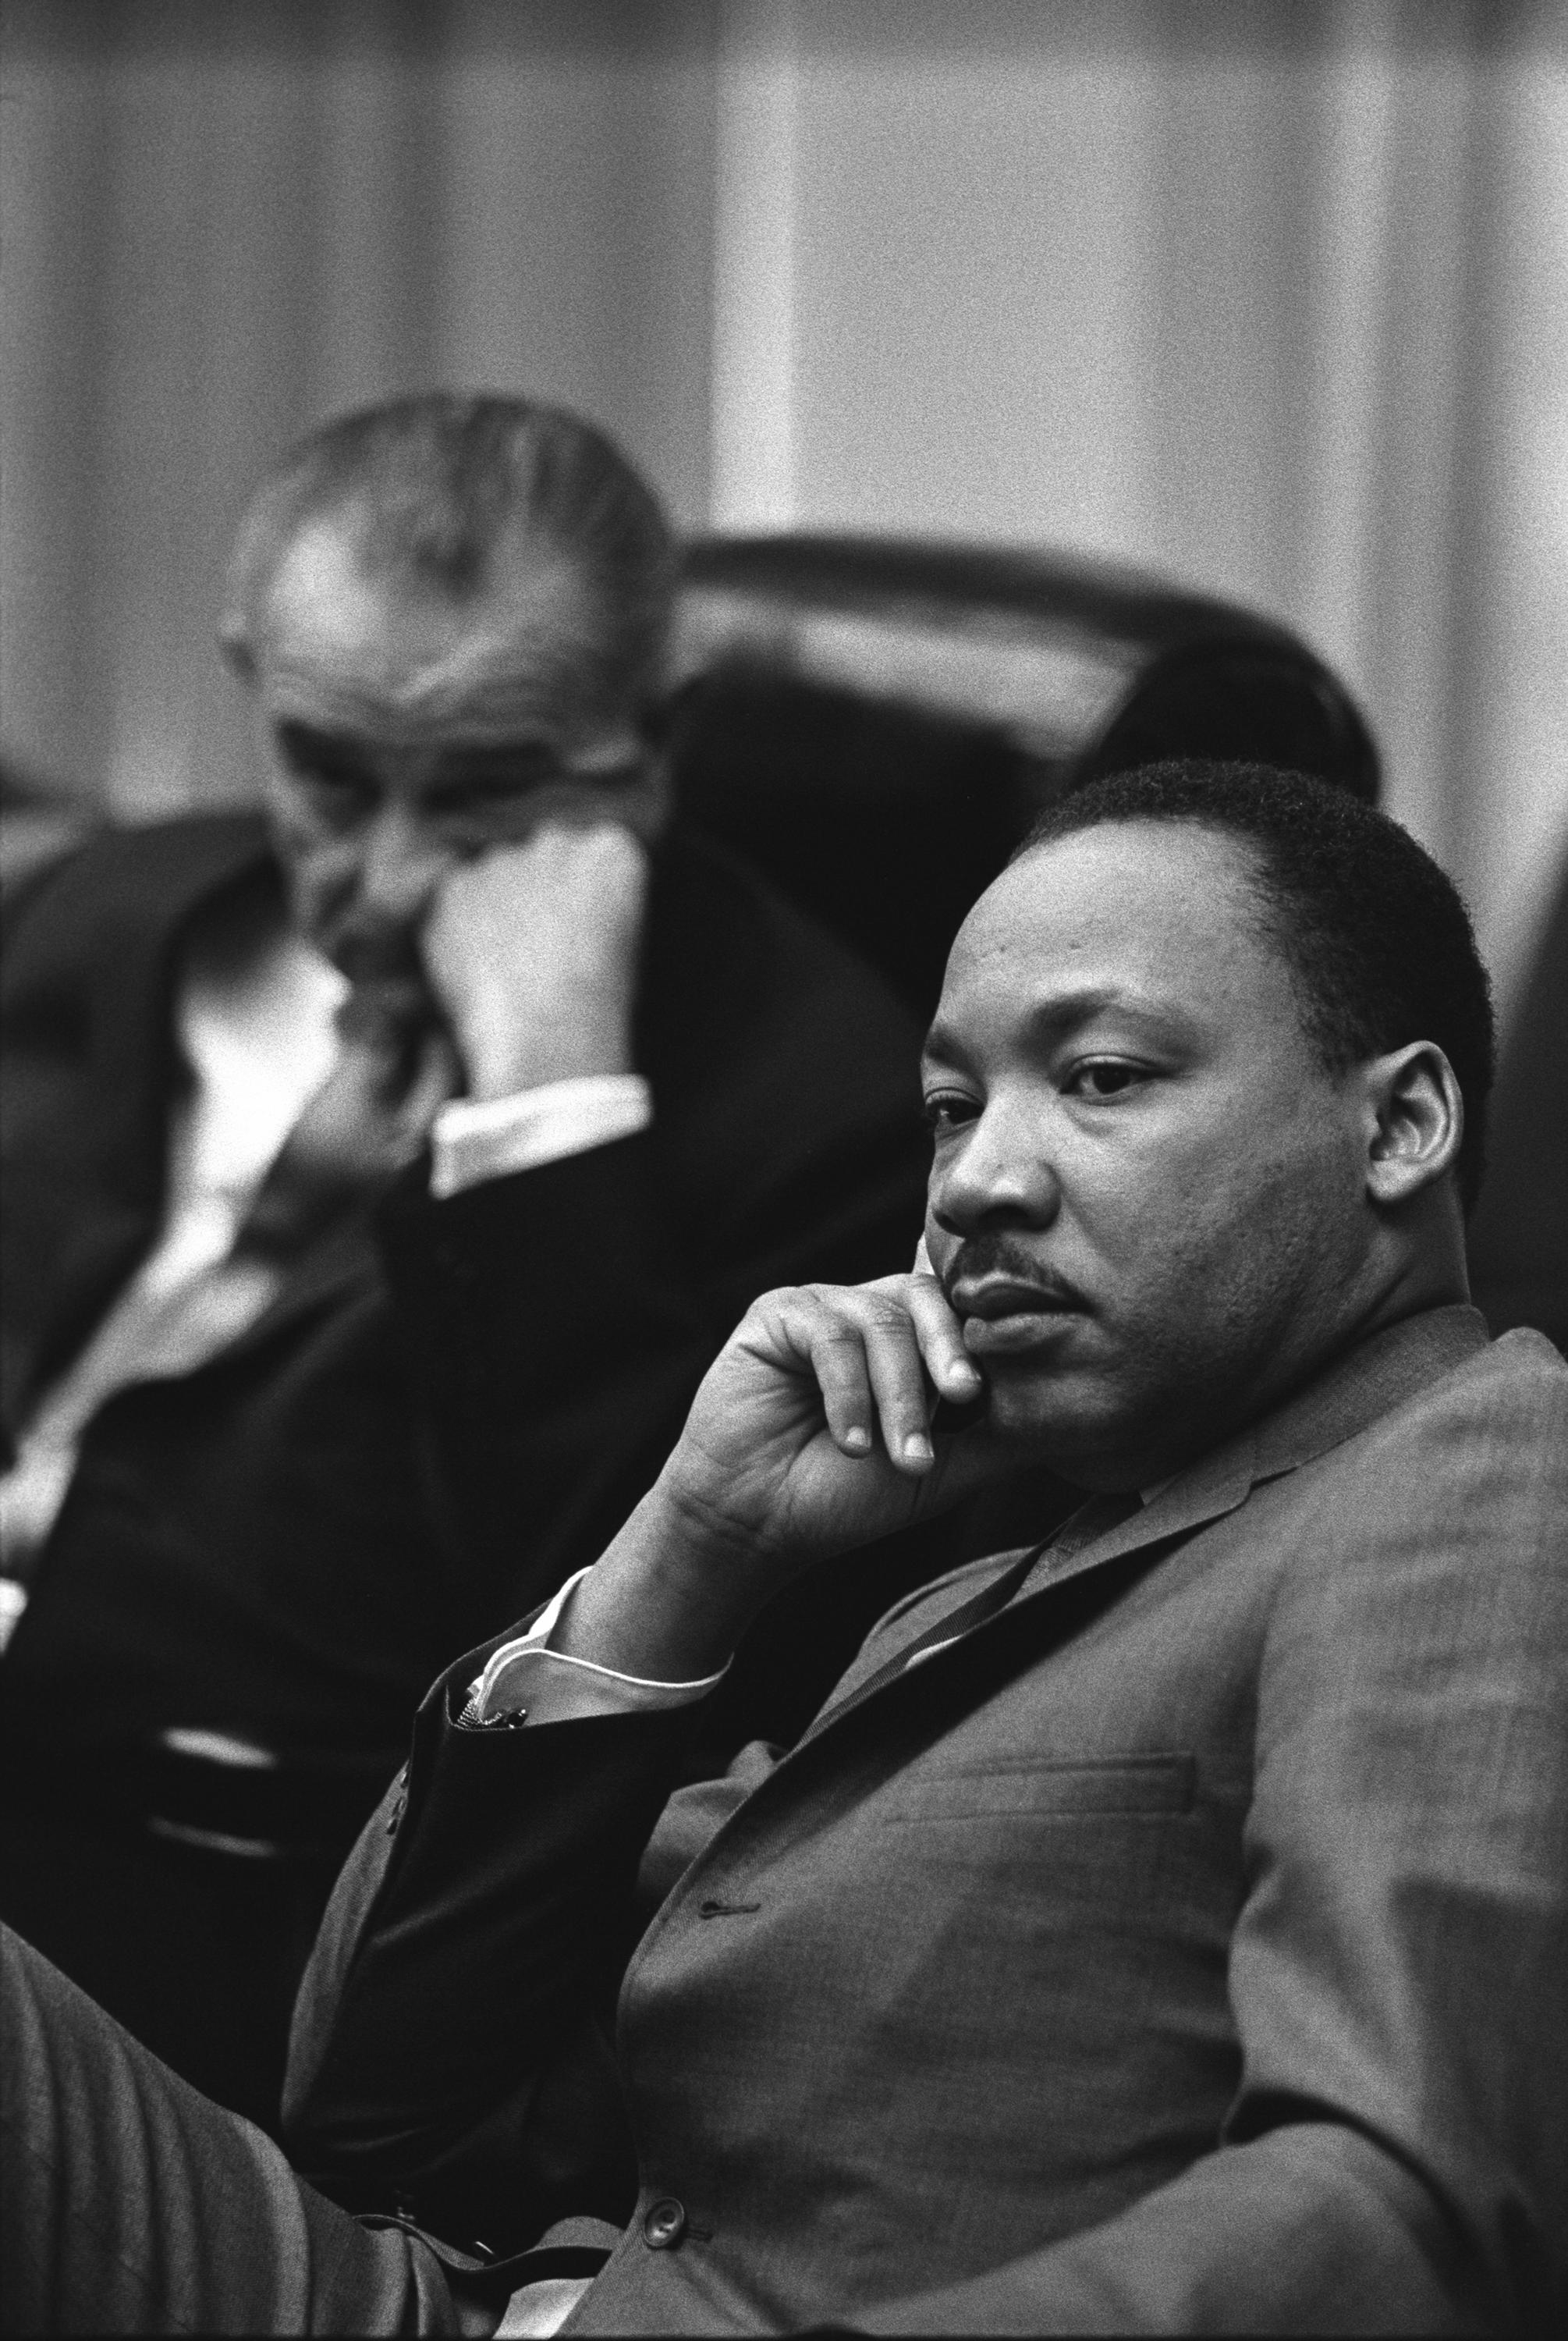 essay on Martin Luther King Jr.